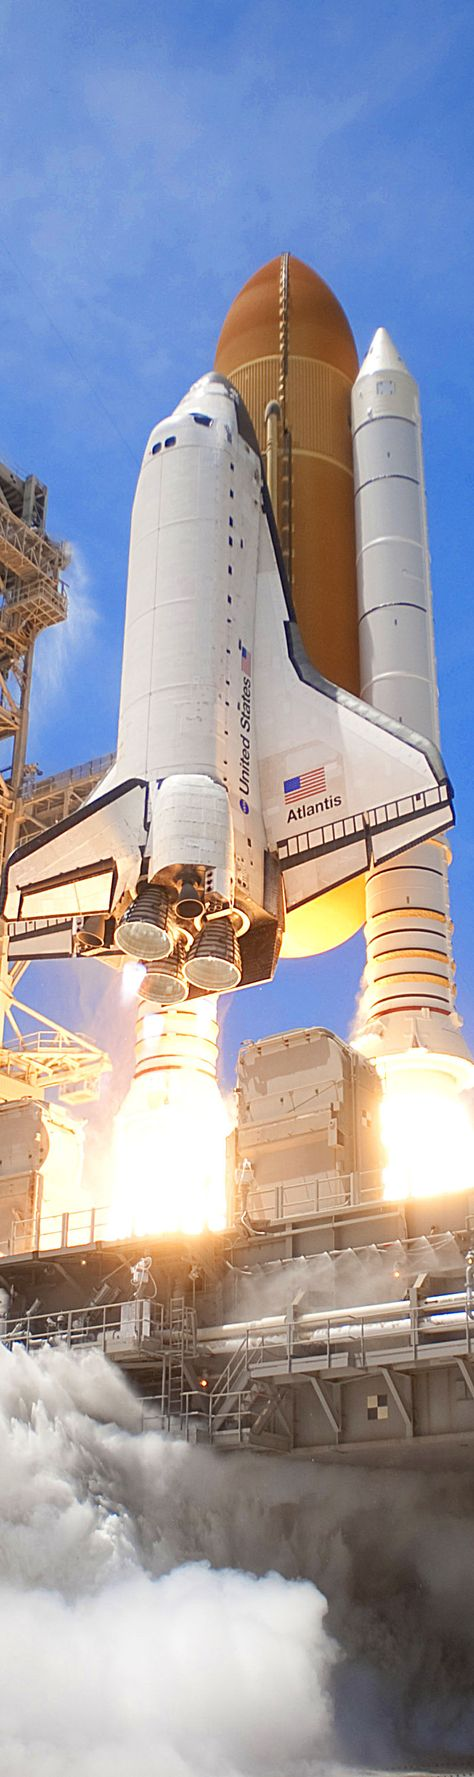 ☼ #aerospace NASA Space Shuttle Atlantis take-off from the Kennedy Space Center in Florida.